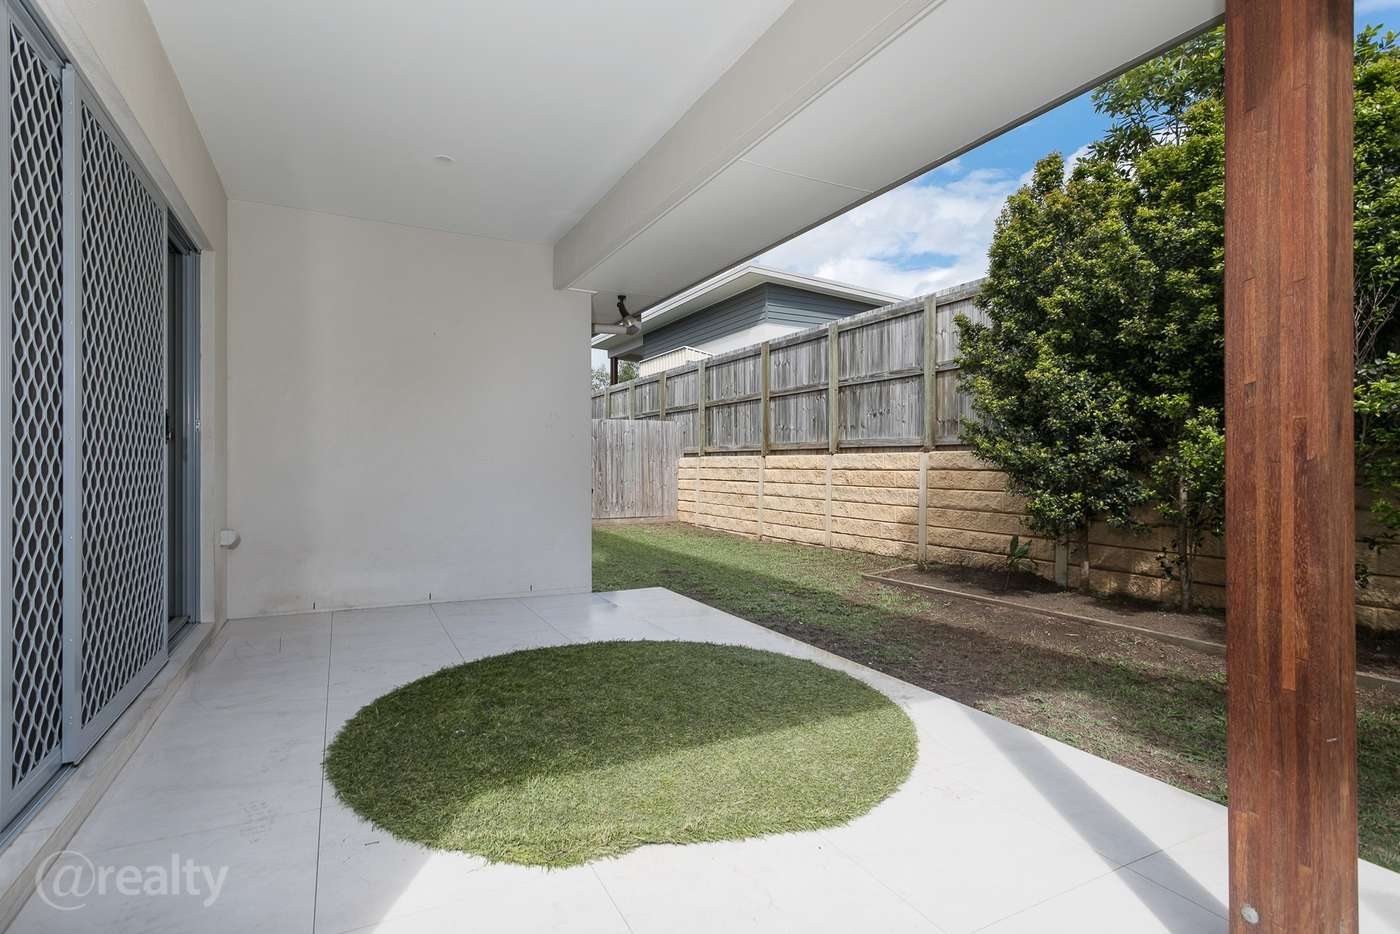 Seventh view of Homely house listing, 39 Unwin Rd North, Redland Bay QLD 4165